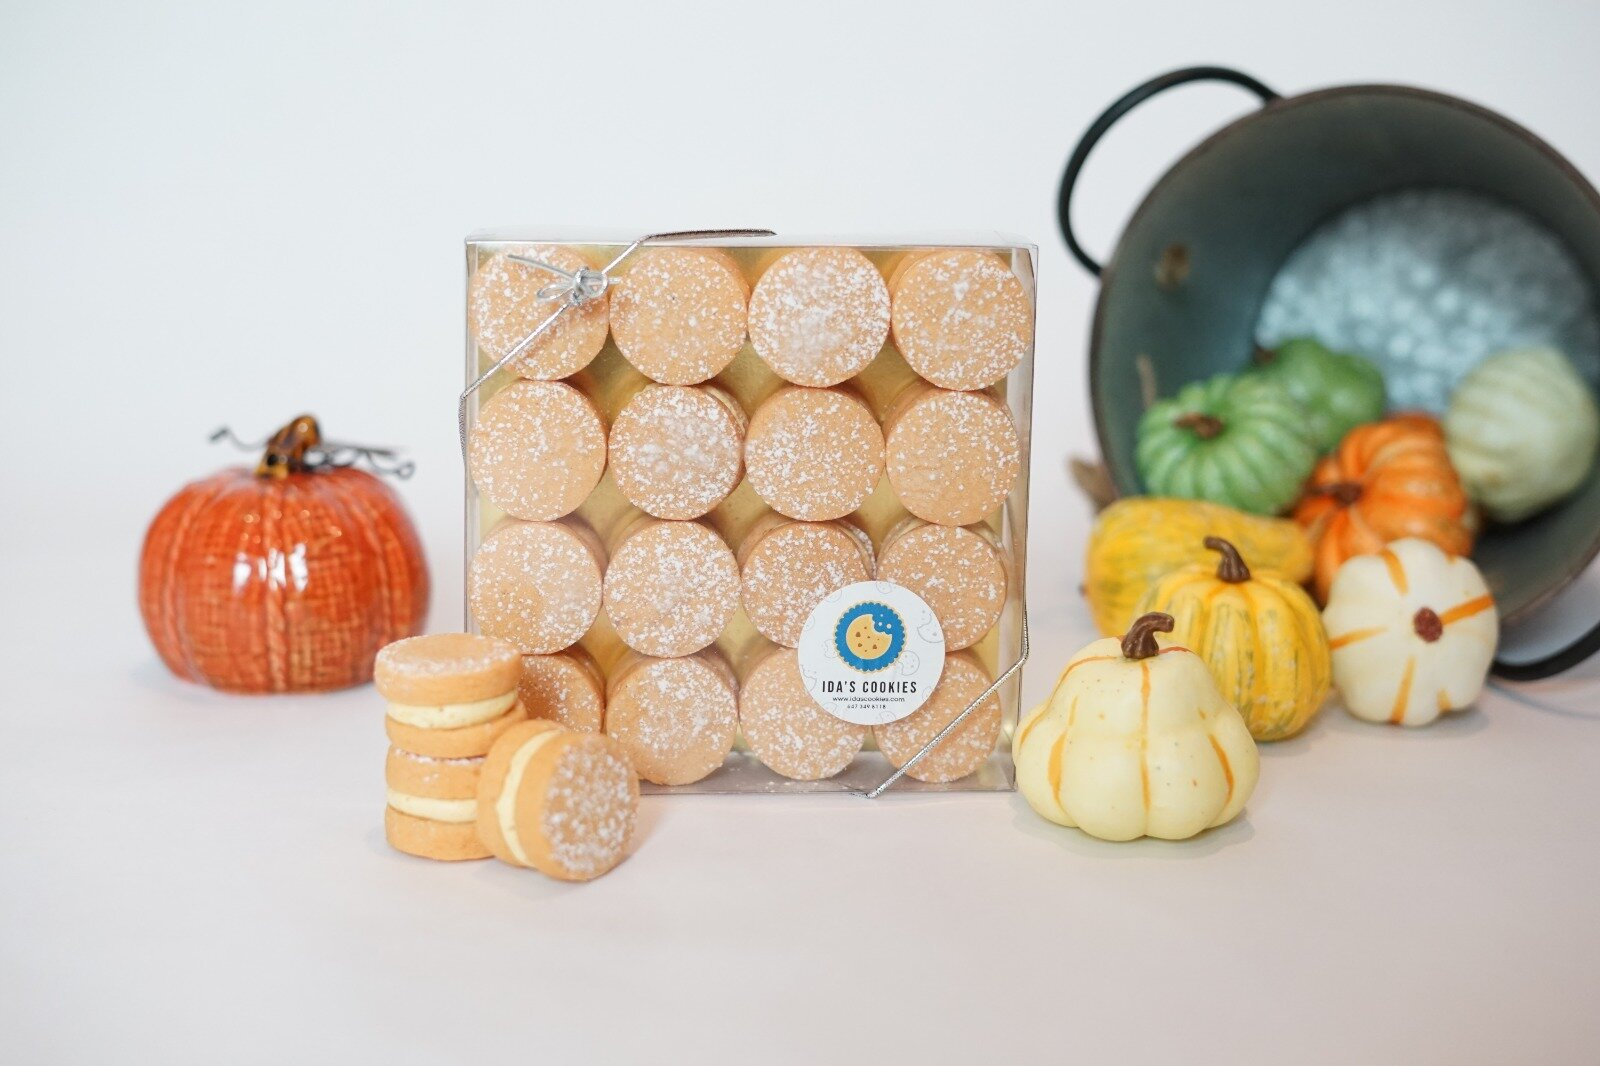 PUMPKIN SPICE SEASON IS HERE AND WE HAVE YOU COVERED!  Indulge in a box of Ida's Pumpkin Spice Shortbread Macarons this Fall and taste the festivities! Smooth velvety pumpkin spice buttercream sandwiched between two soft, melt-in-your-mouth pumpkin spice shortbread cookies, WOW! These cookies are nut-free and make the perfect gift this Thanksgiving season. What's left to say? Go try them!  $25 per 16pcs box.  Made with love in Toronto!